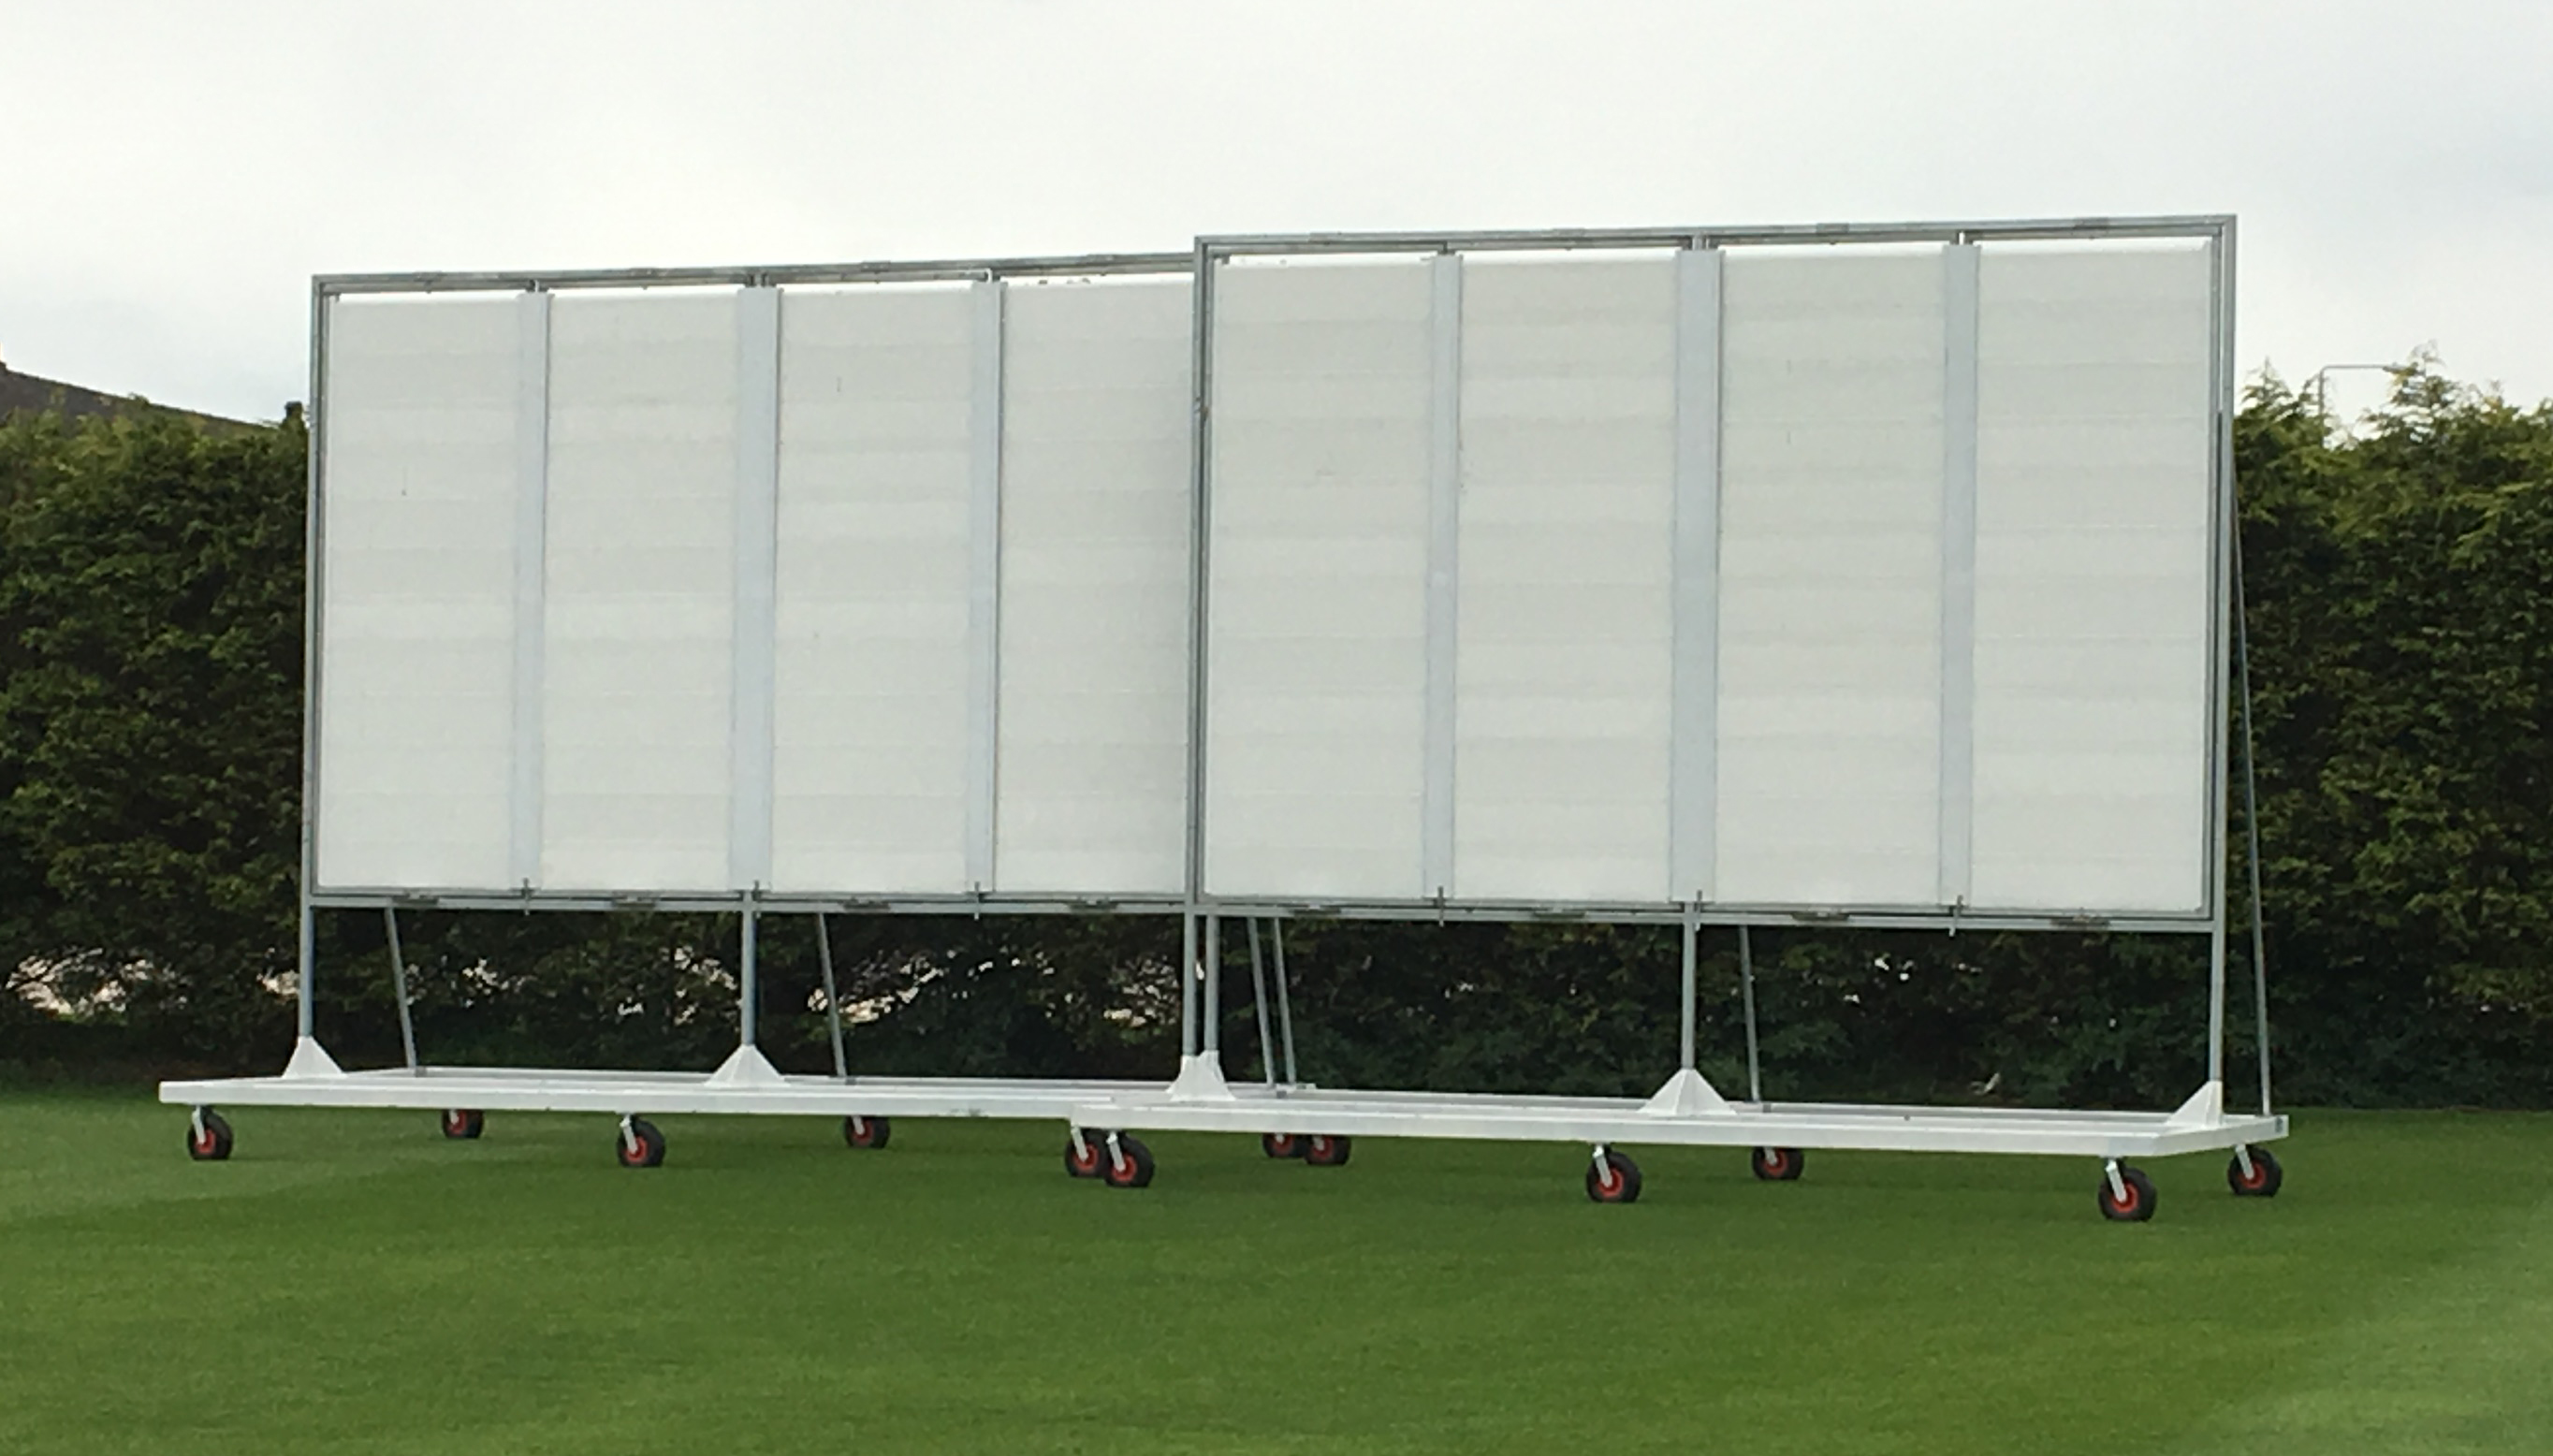 Cricket Sight Screens